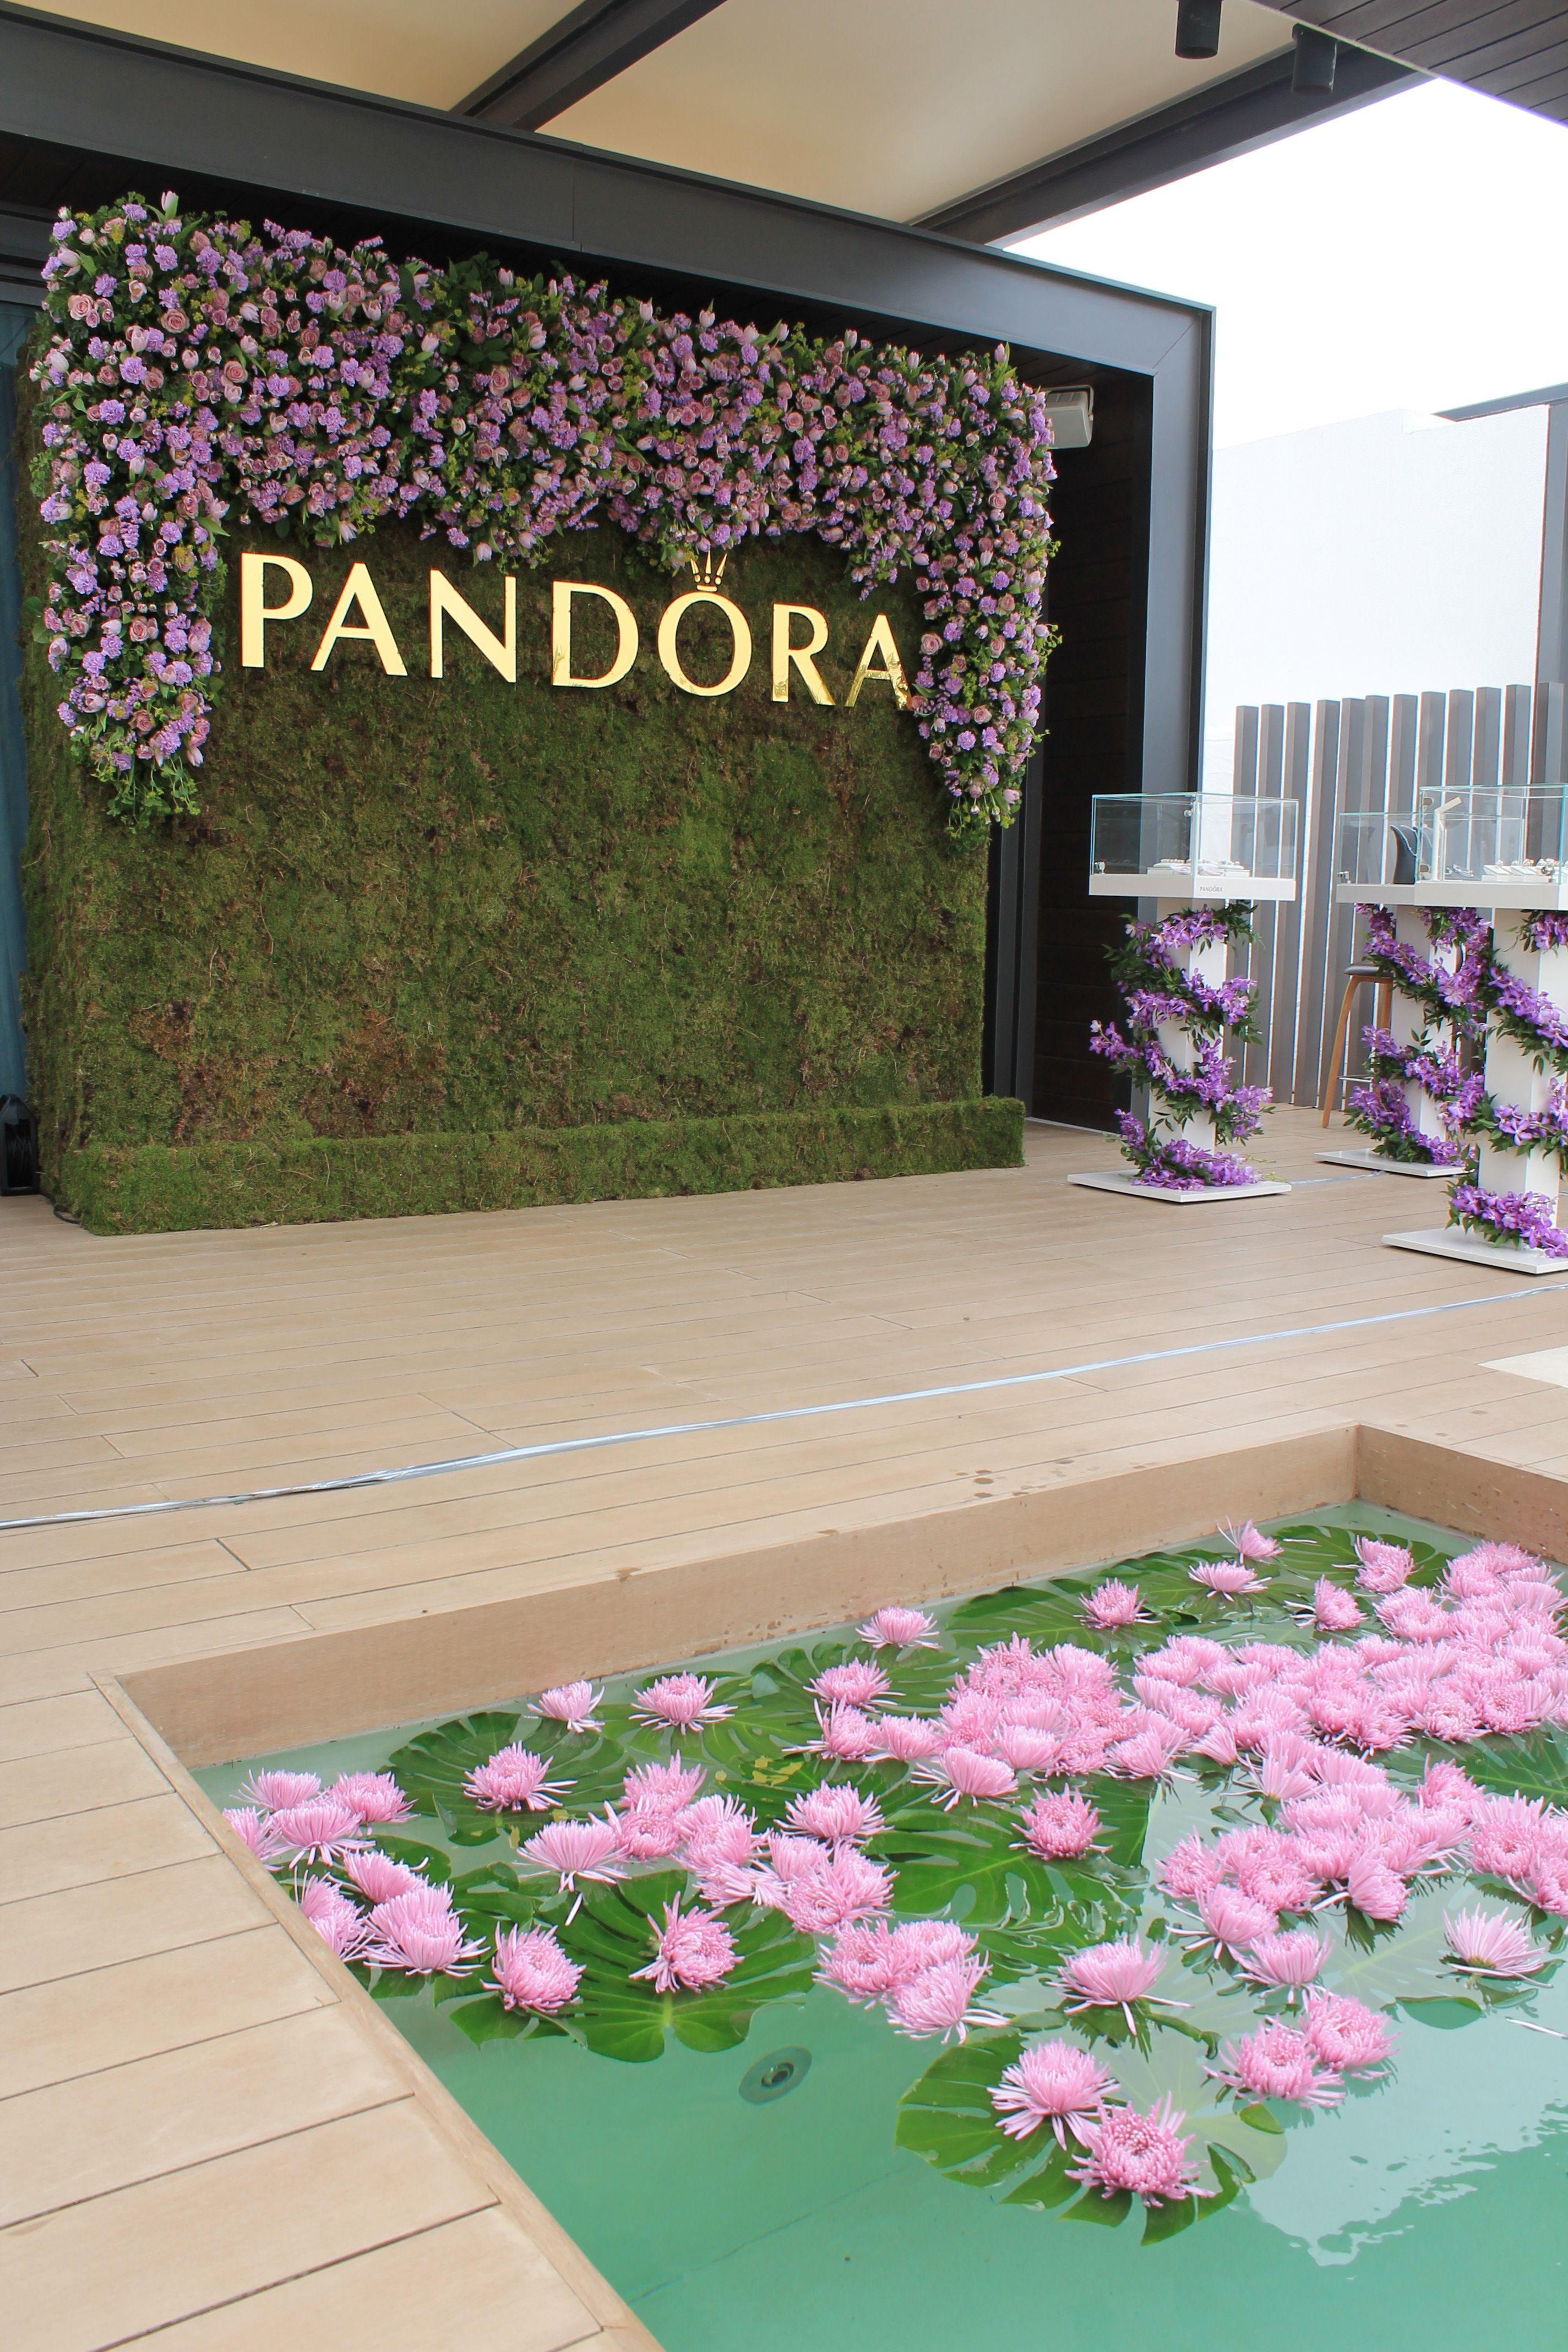 Beautiful Flower Wall And Styling Produced And Designed By Carousel Events Dubai For Pandora Launch Of Spring Corporate Event Design Hotel Flowers Flower Wall